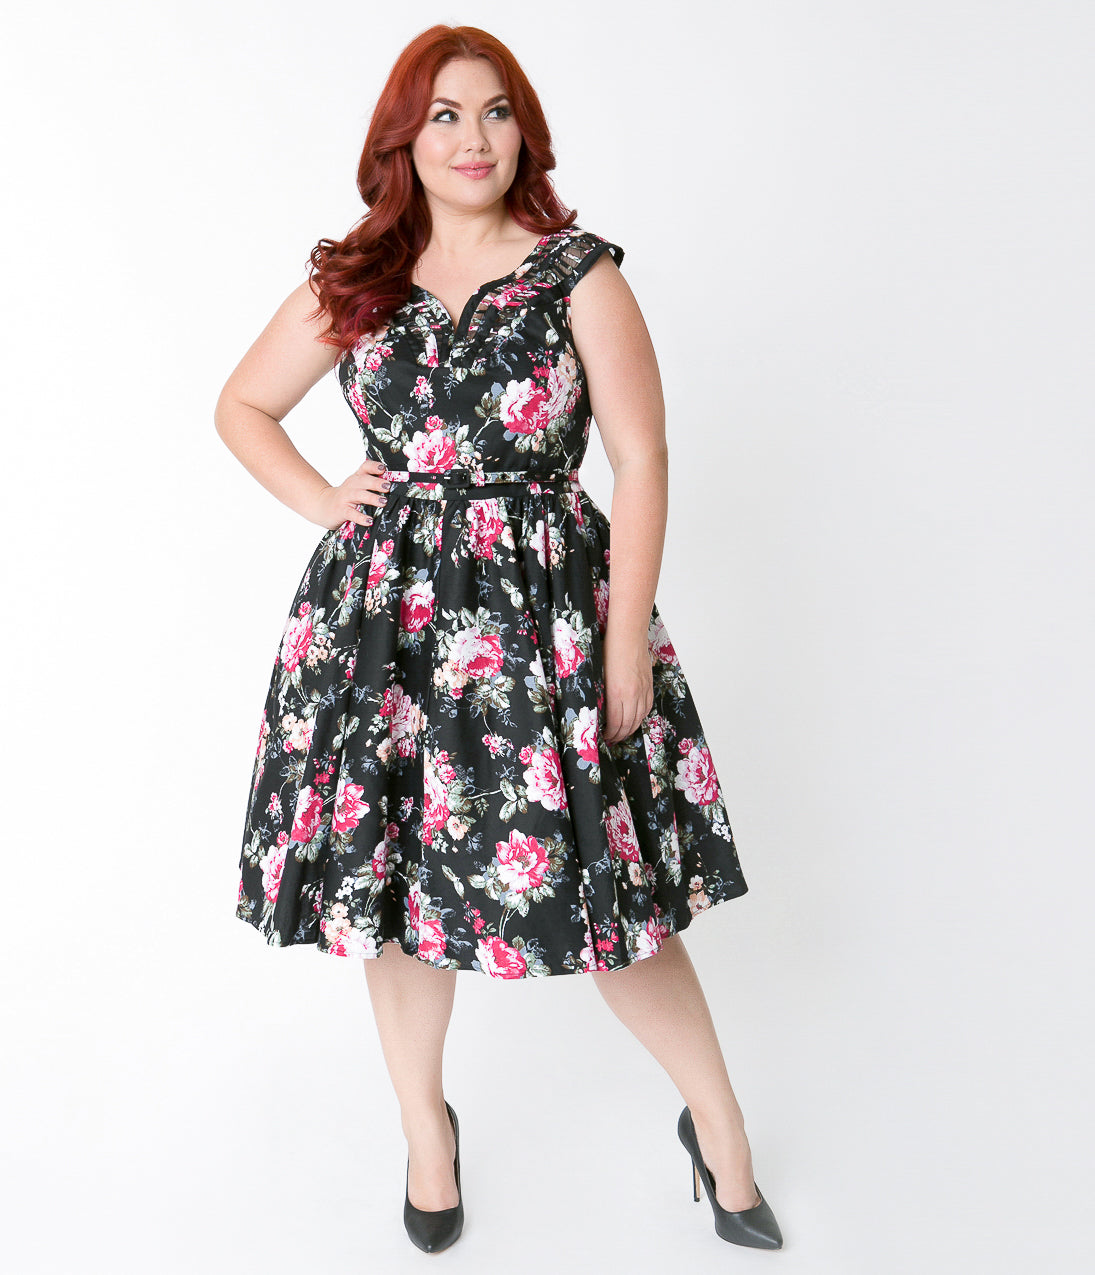 Pin Up Dresses | Pin Up Clothing Unique Vintage Plus Size 1950S Black  Floral Bouquet Sleeveless Olive Swing Dress $110.00 AT vintagedancer.com